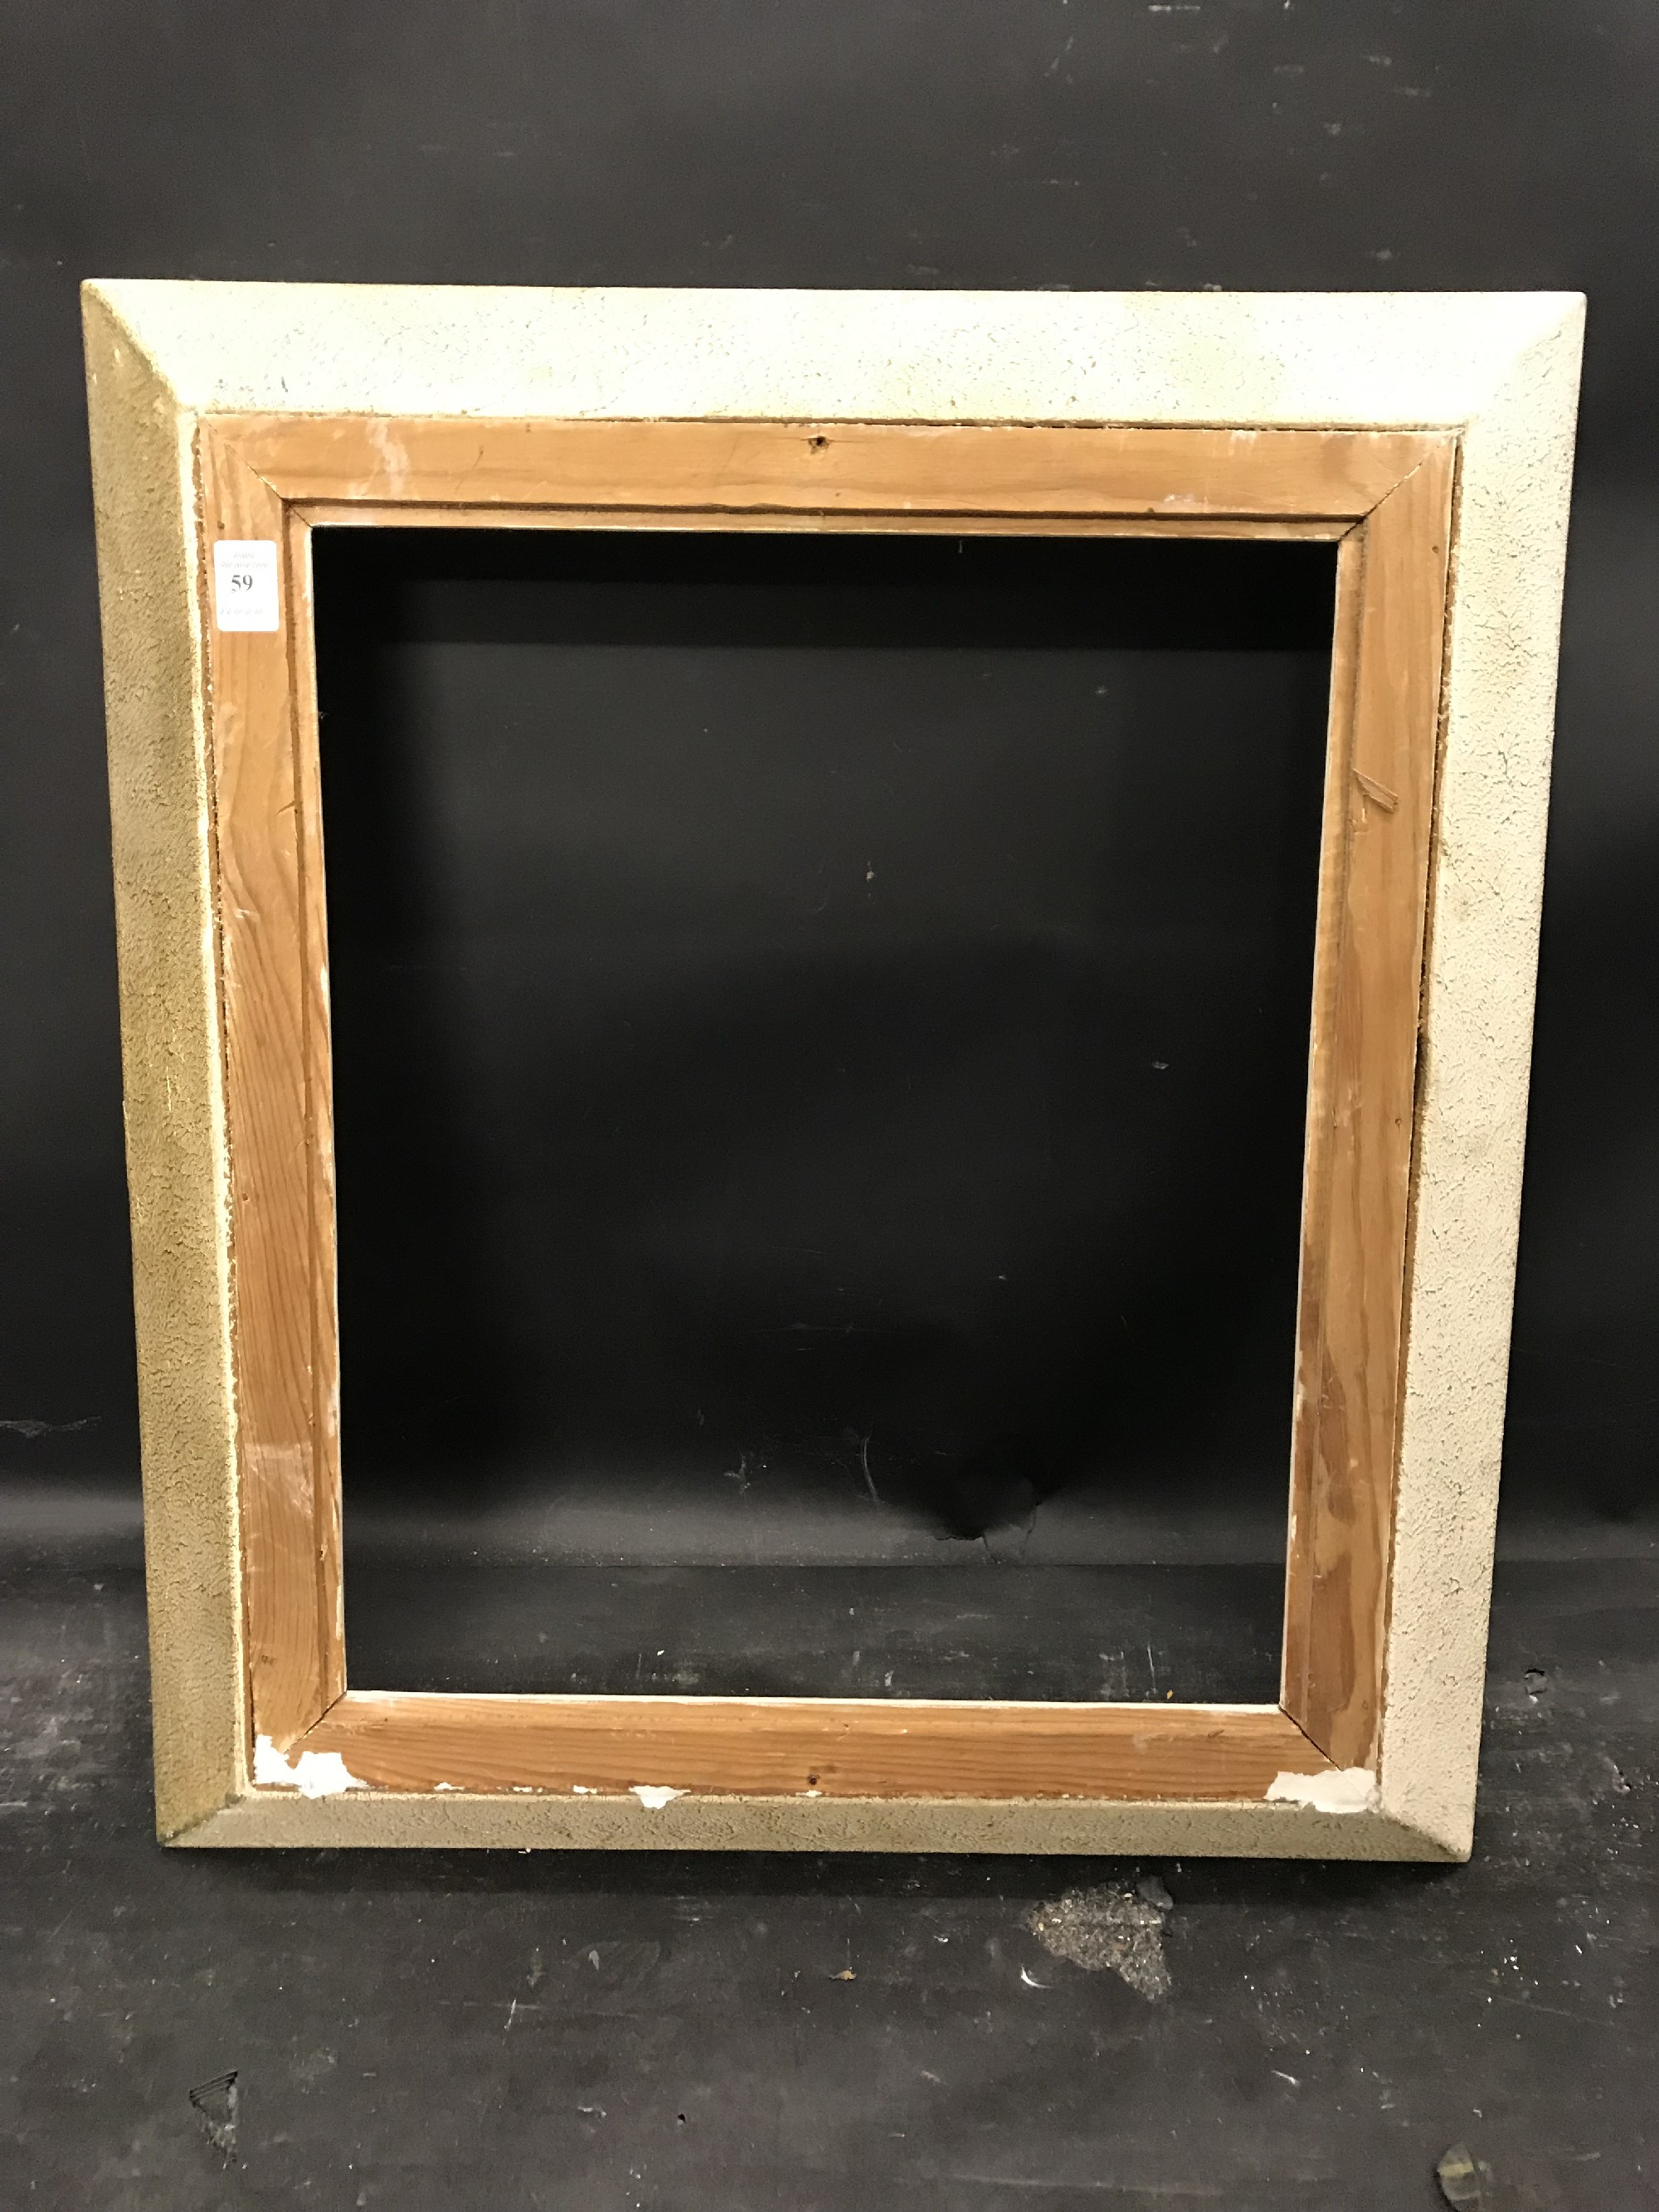 "Lot 59 - 20th Century French School. A White Painted Frame, 18"" x 15""."